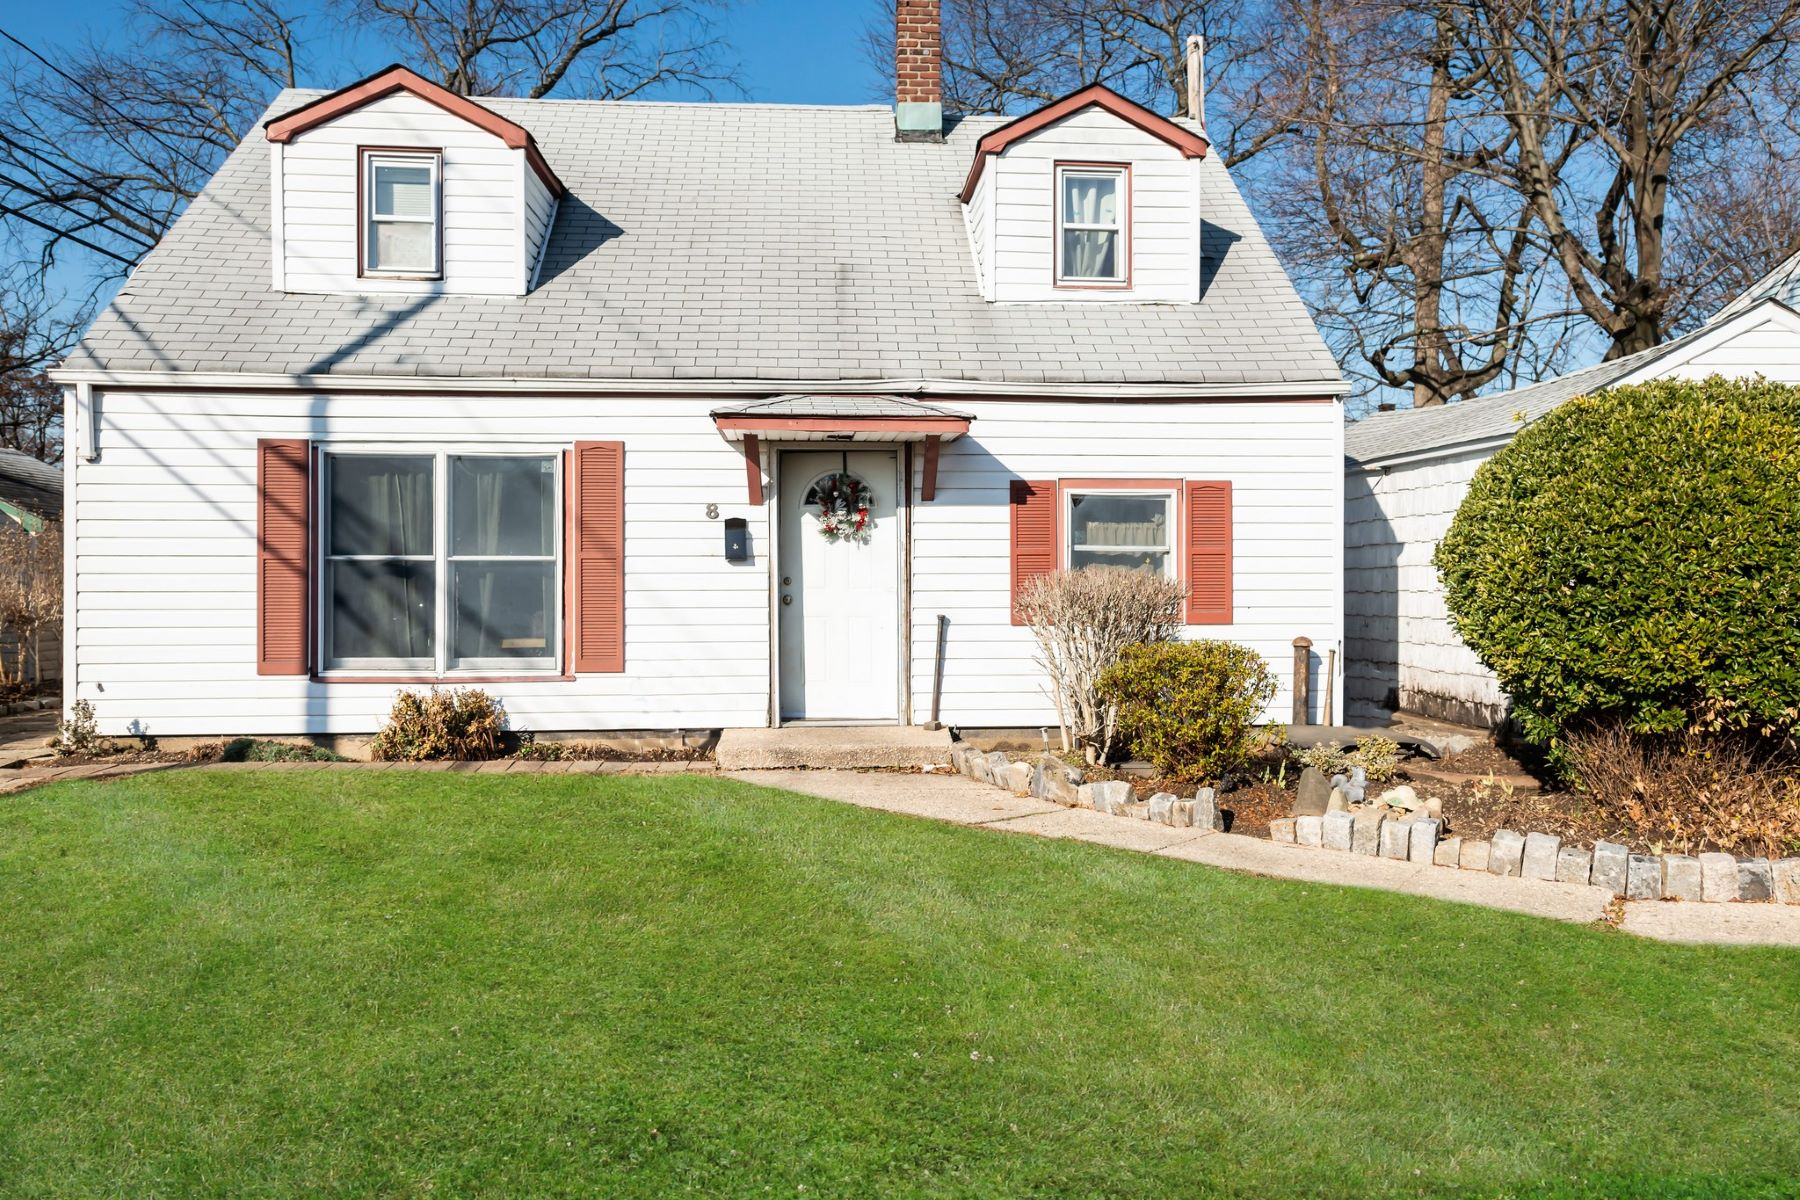 Single Family Homes for Active at Westbury 8 Clover Lane Westbury, New York 11590 United States